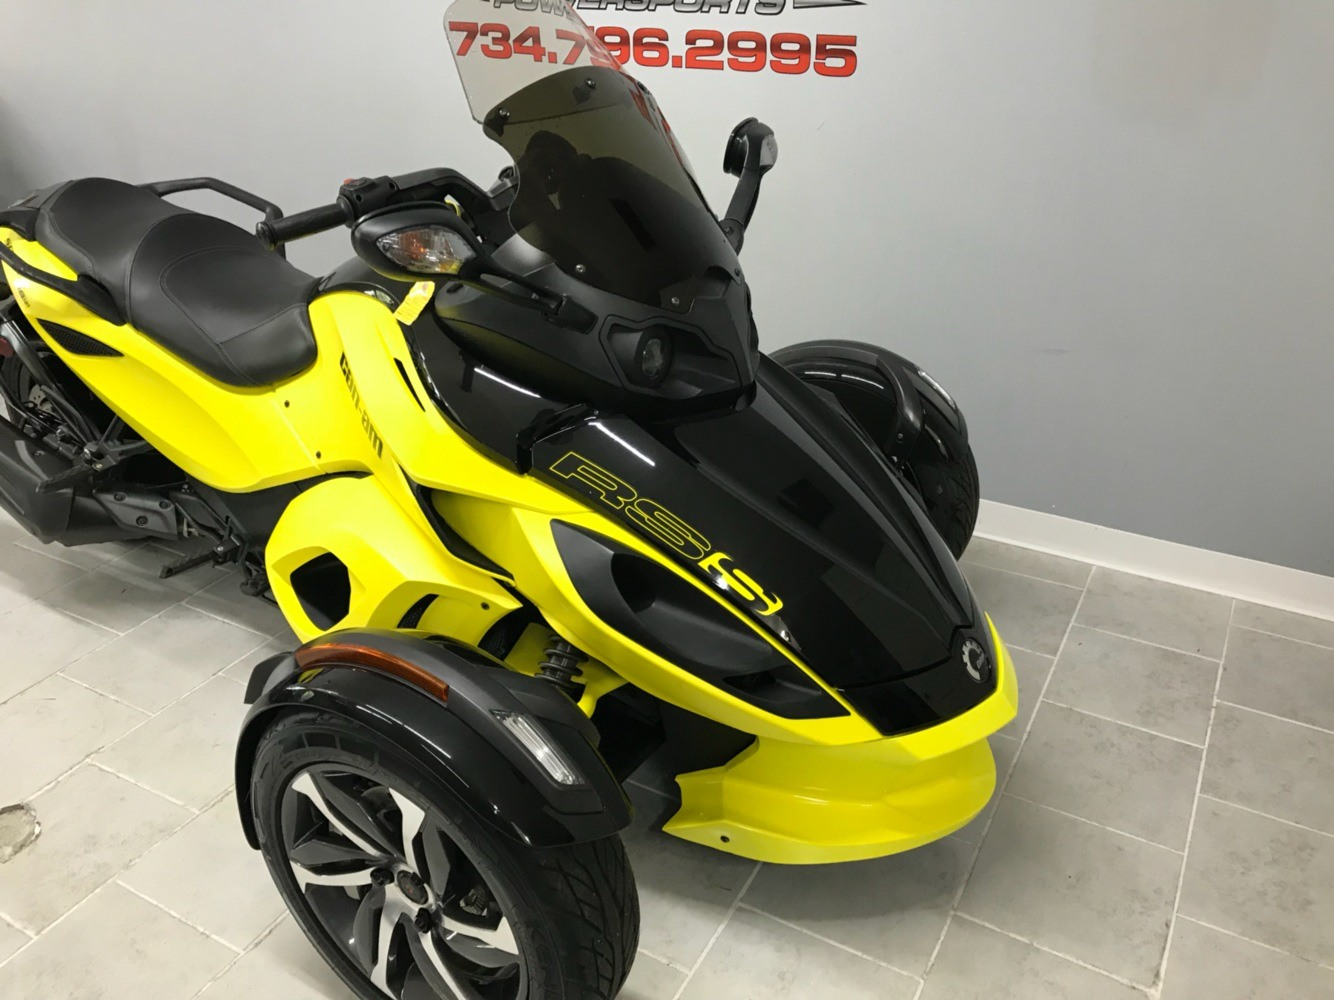 2014 Can-Am™ Spyder RS-S SM5 3